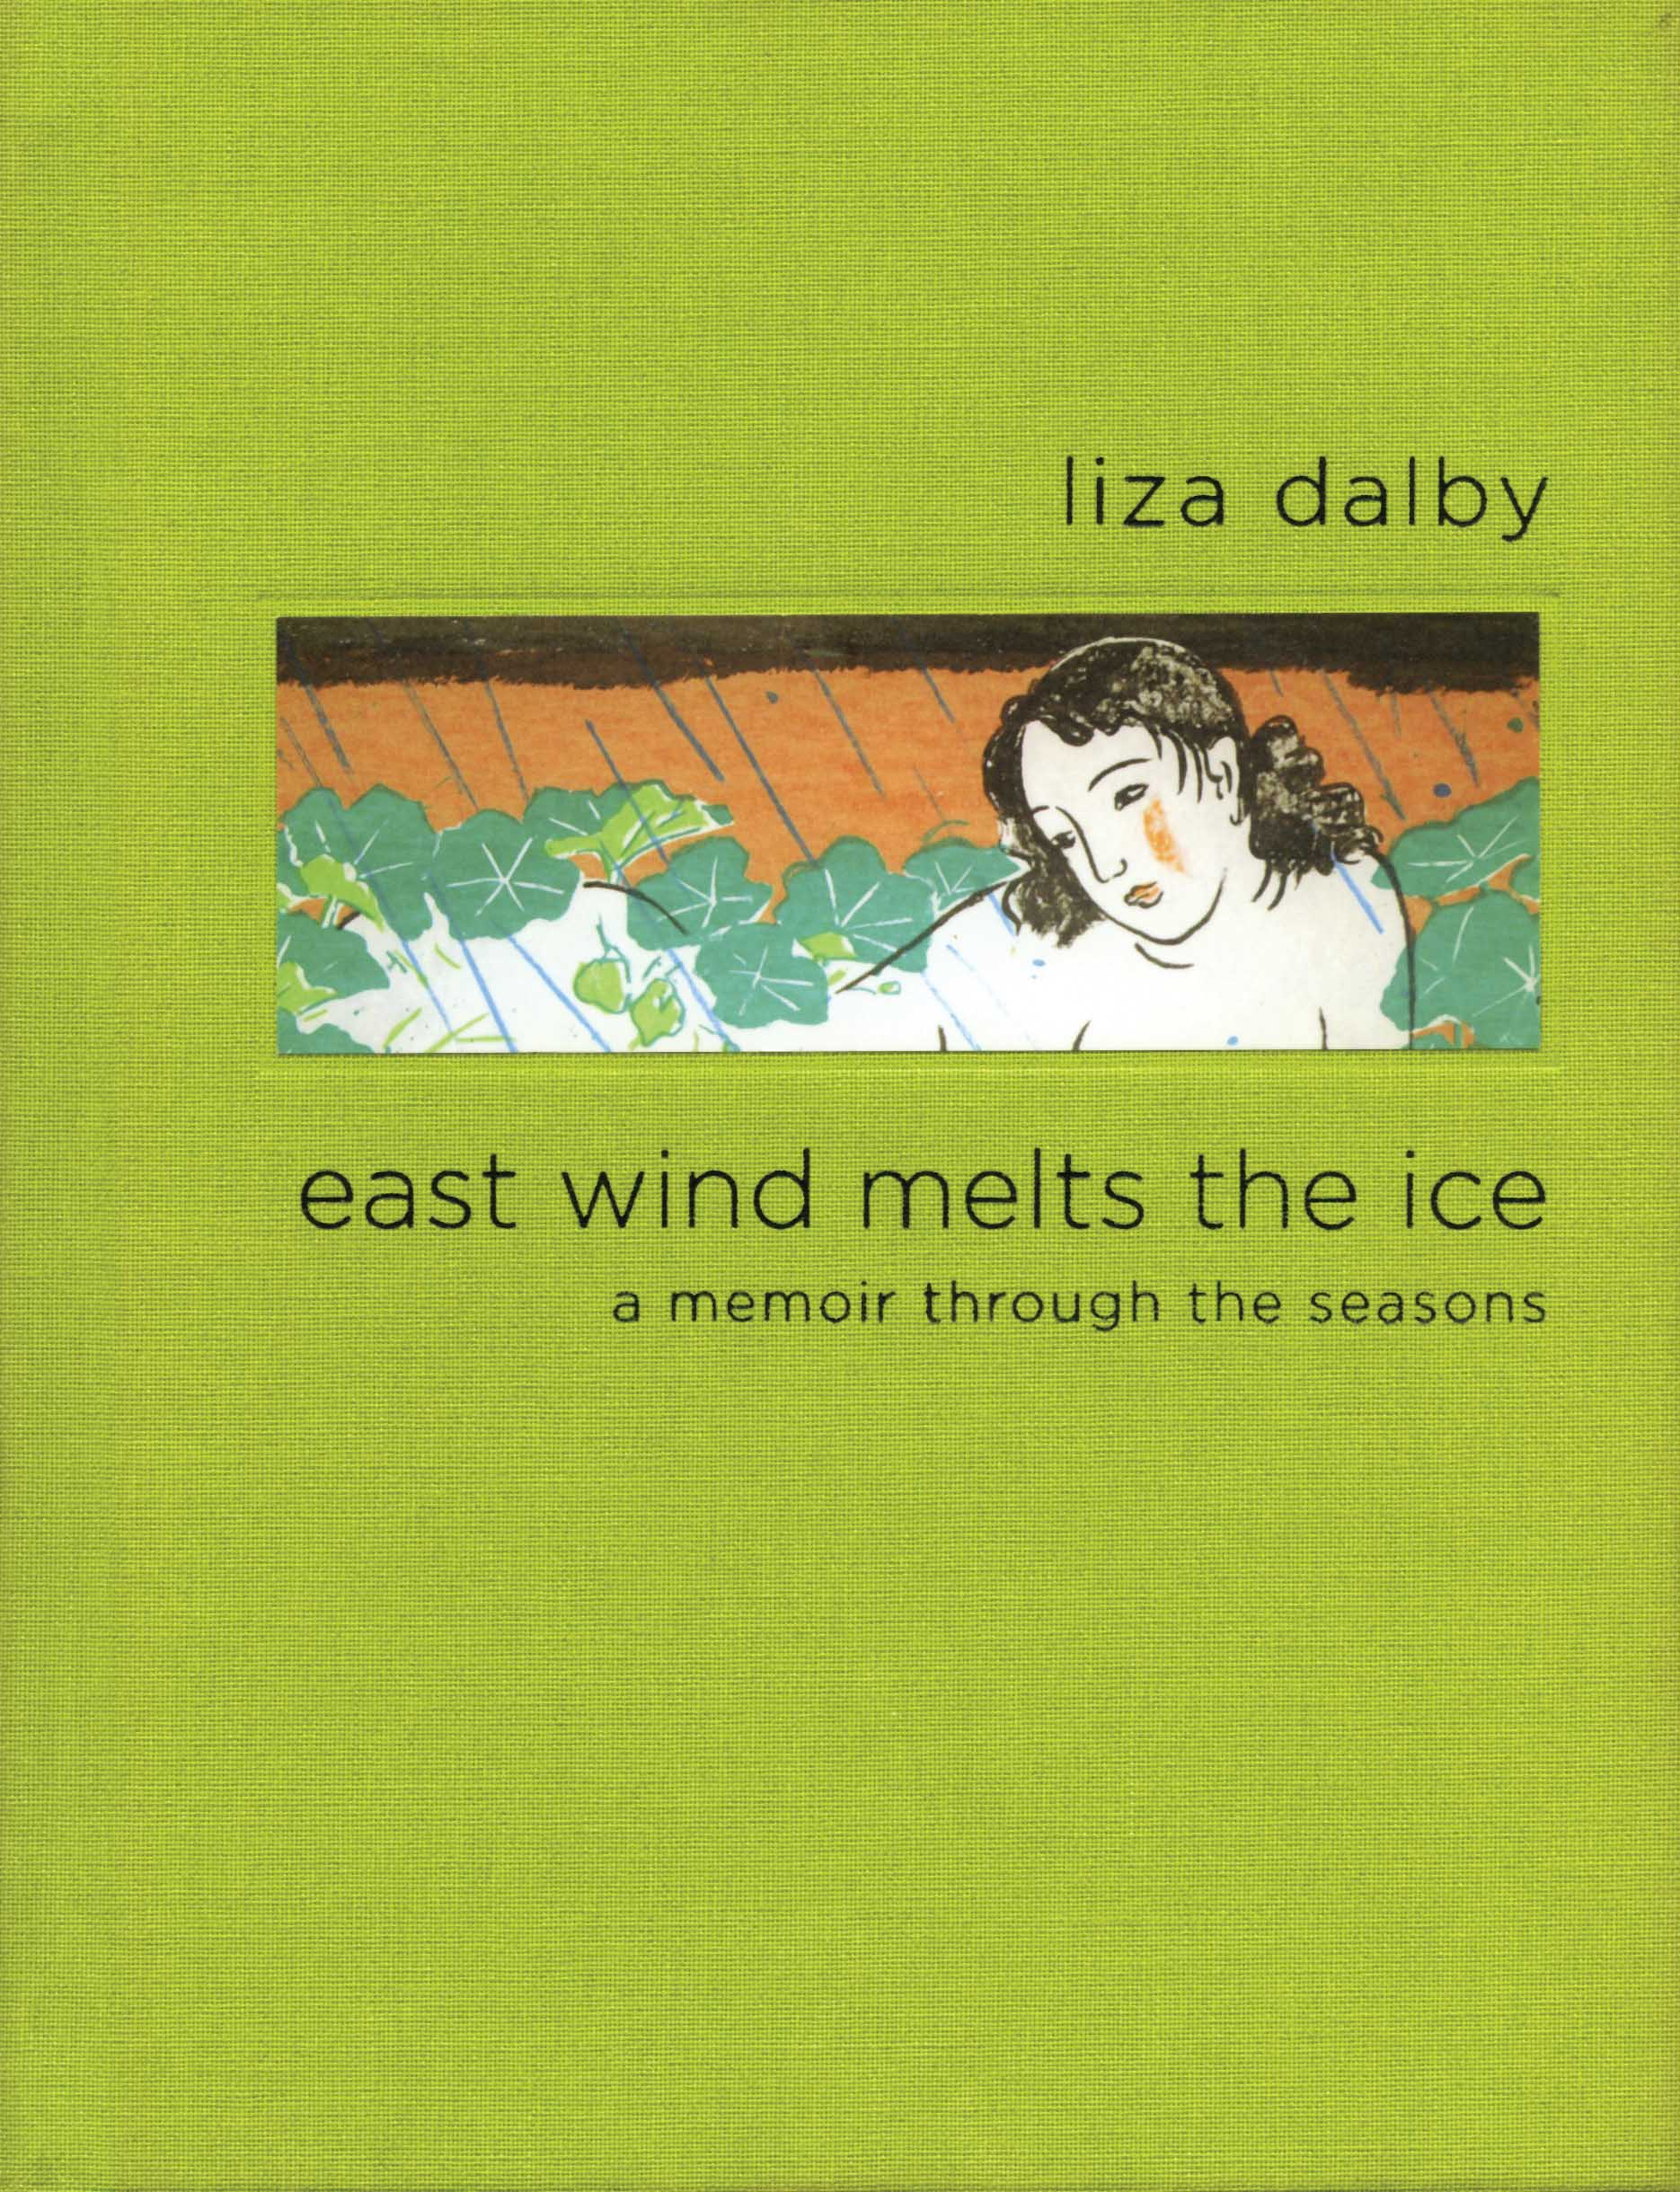 east-wind-melts-the-ice.jpg